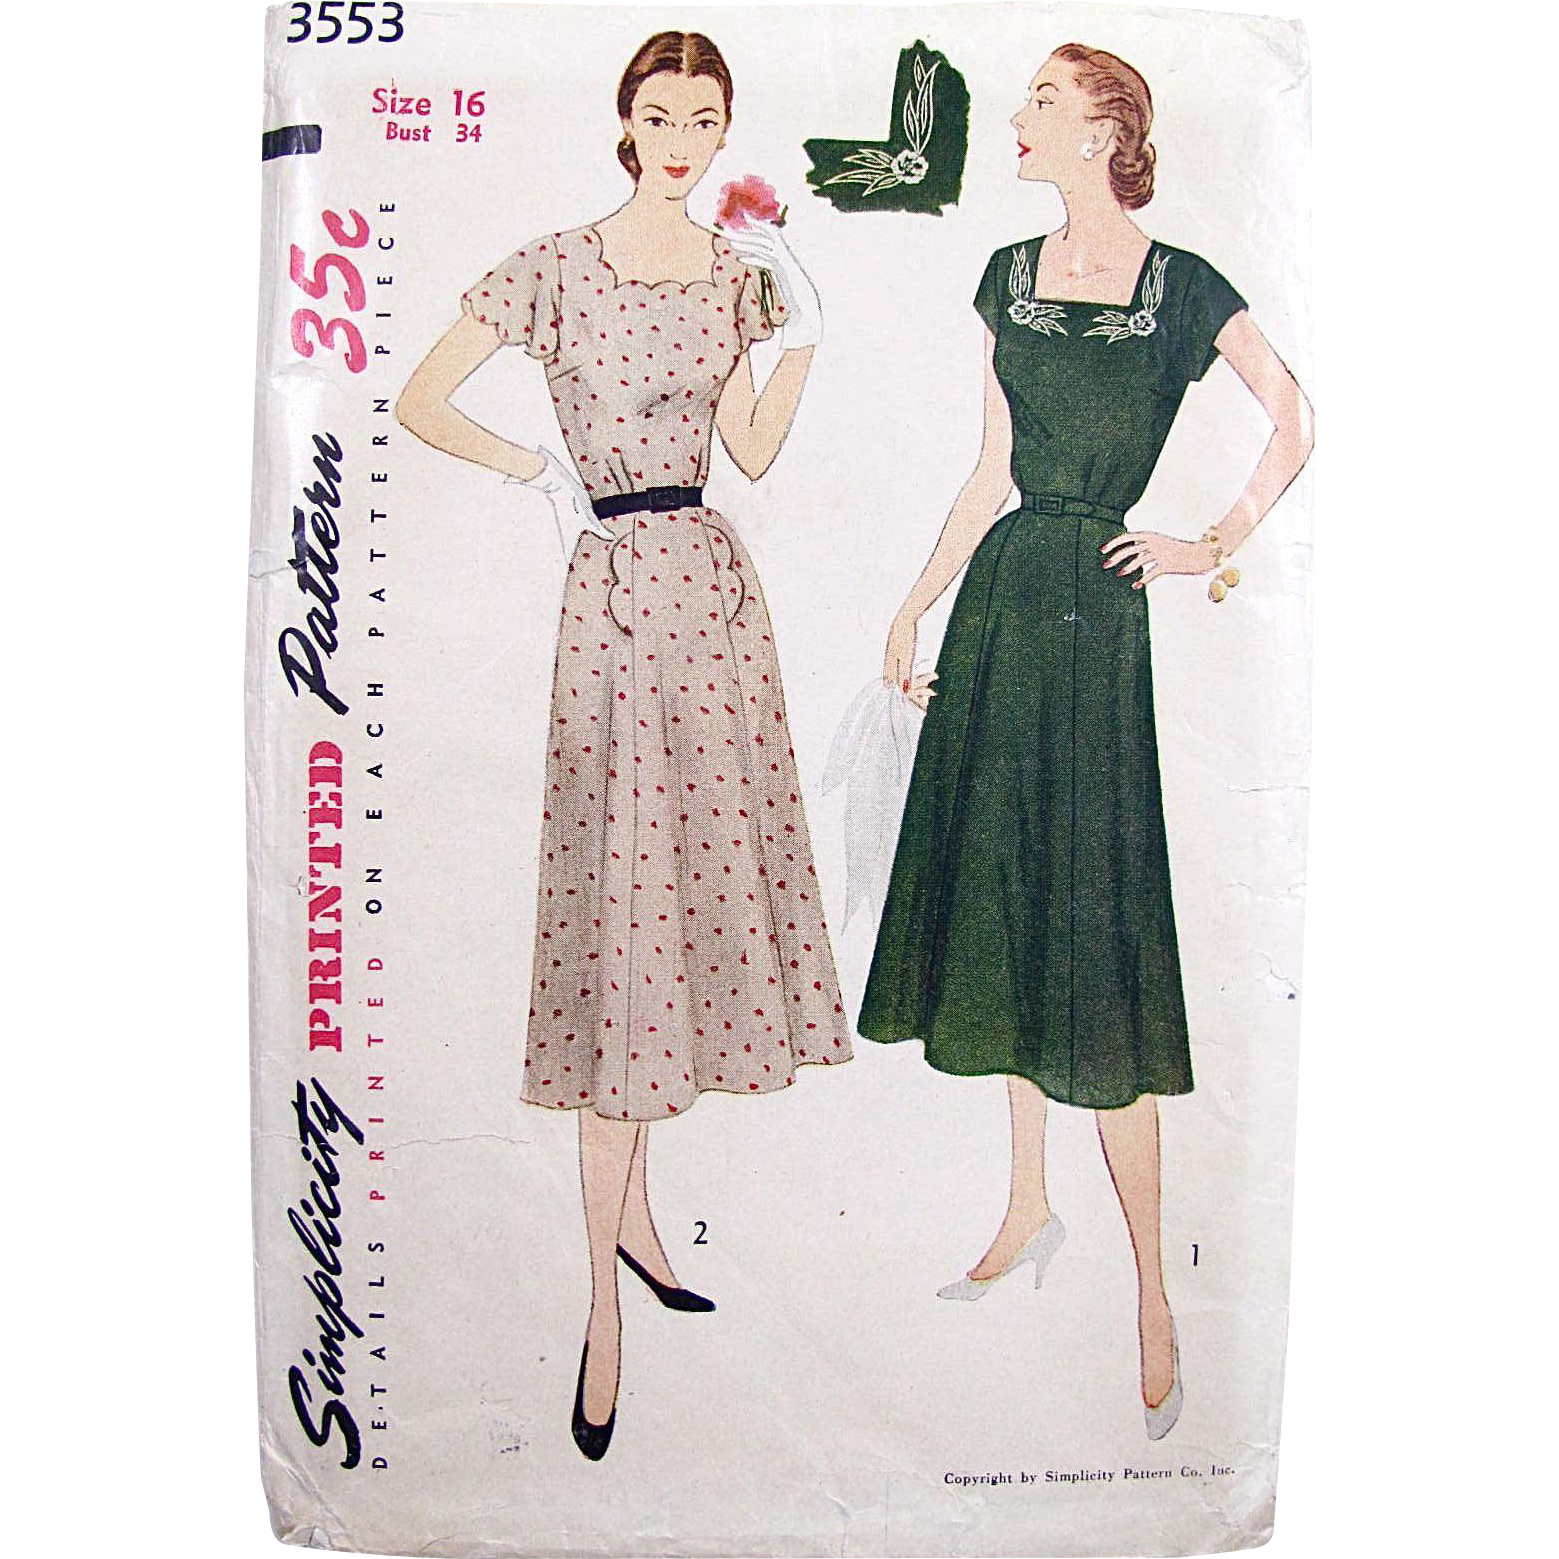 Simplicity 3553, Misses Embroidered Dress Pattern, Vintage 1951, Complete and Factory Folded, Size 16, Gored Skirt, Square Neckline, Bust 34 Inches